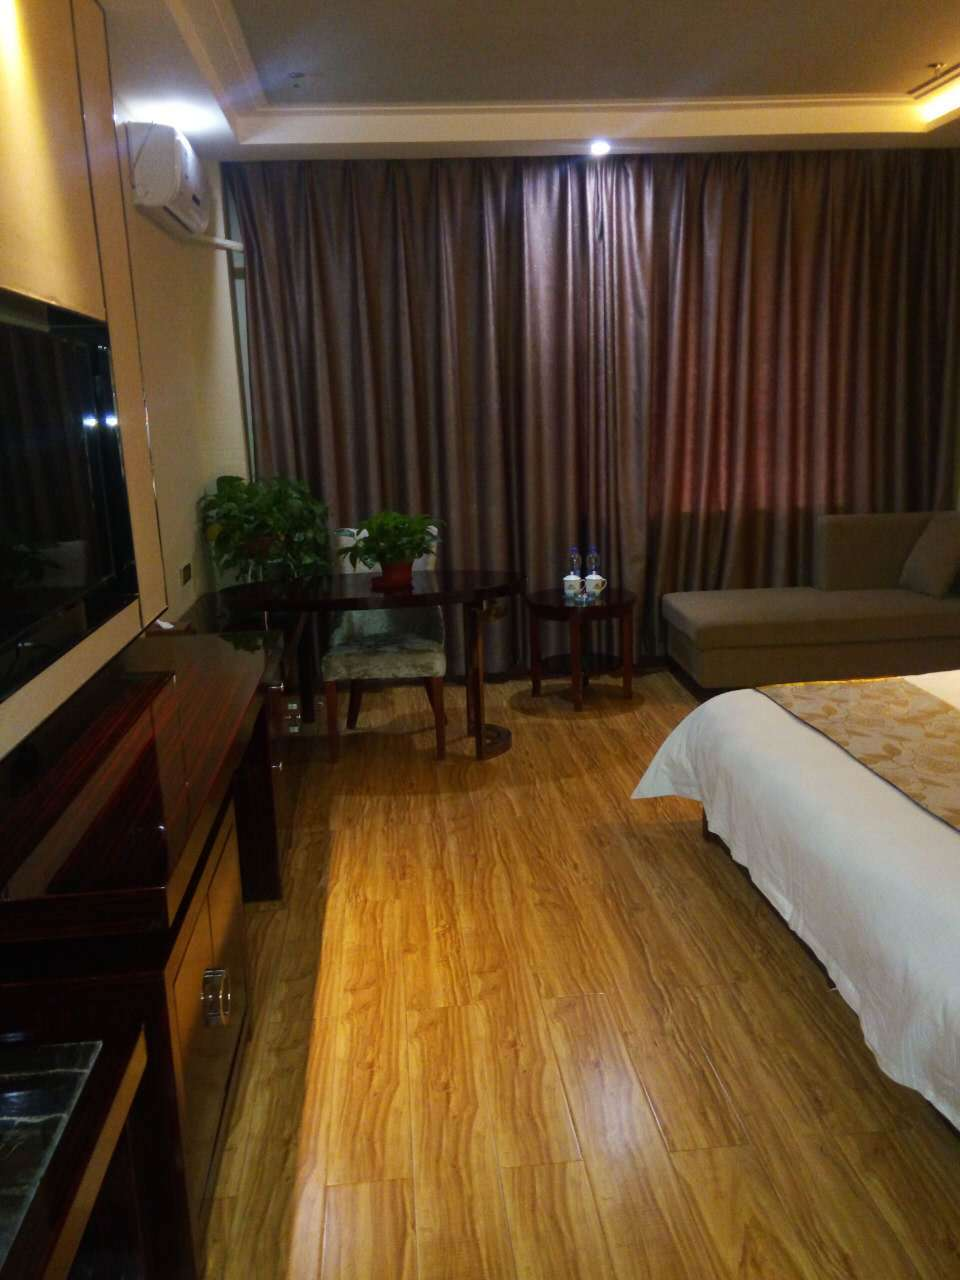 Business single room of Jintian hotel in Dingxi